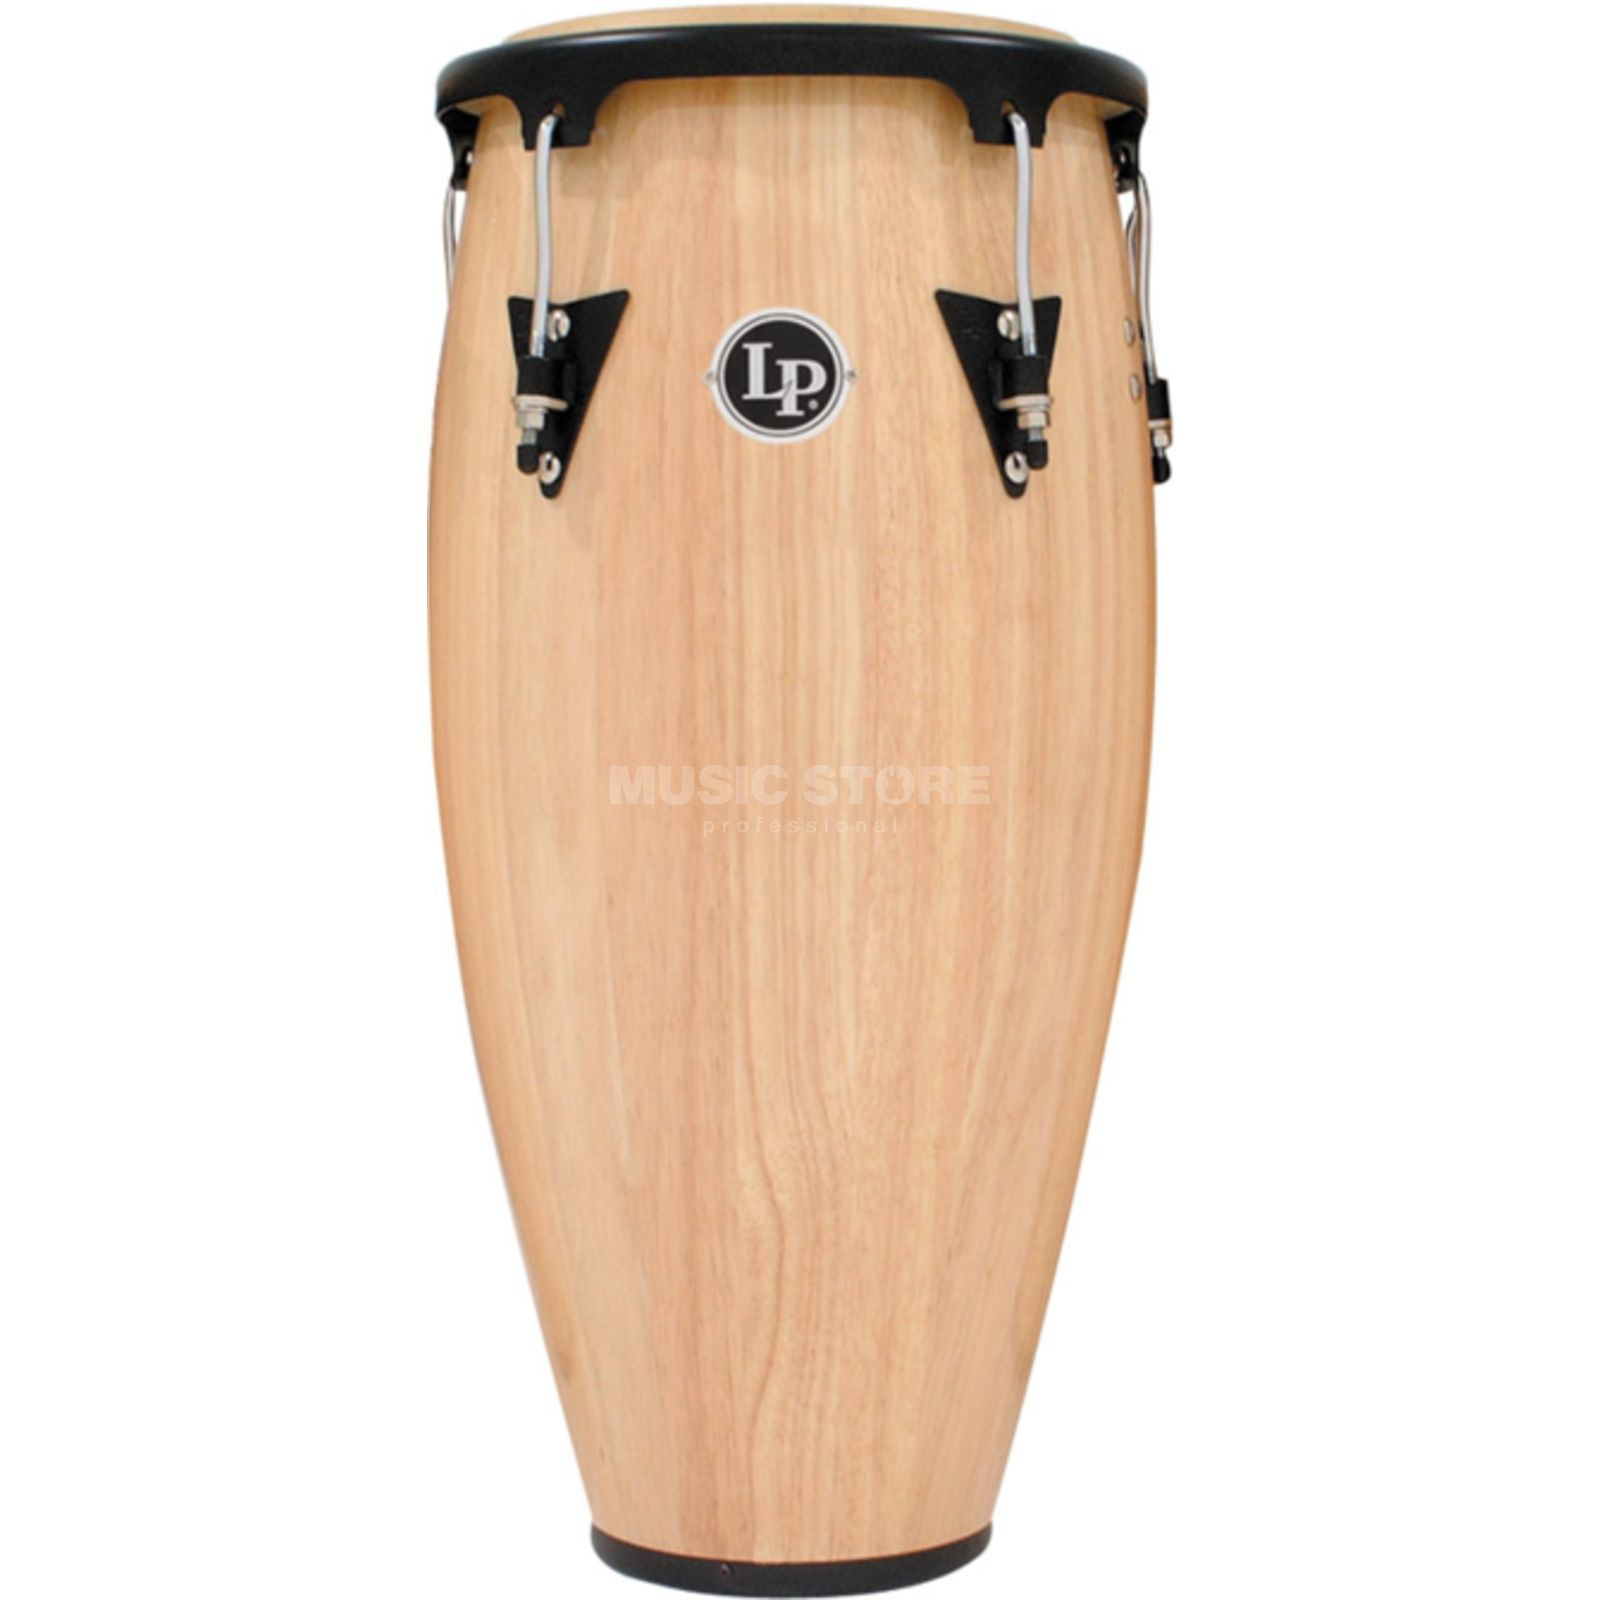 "Latin Percussion Aspire Conga LPA611-AW, 11"" Conga, Natural Wood #AW Produktbillede"